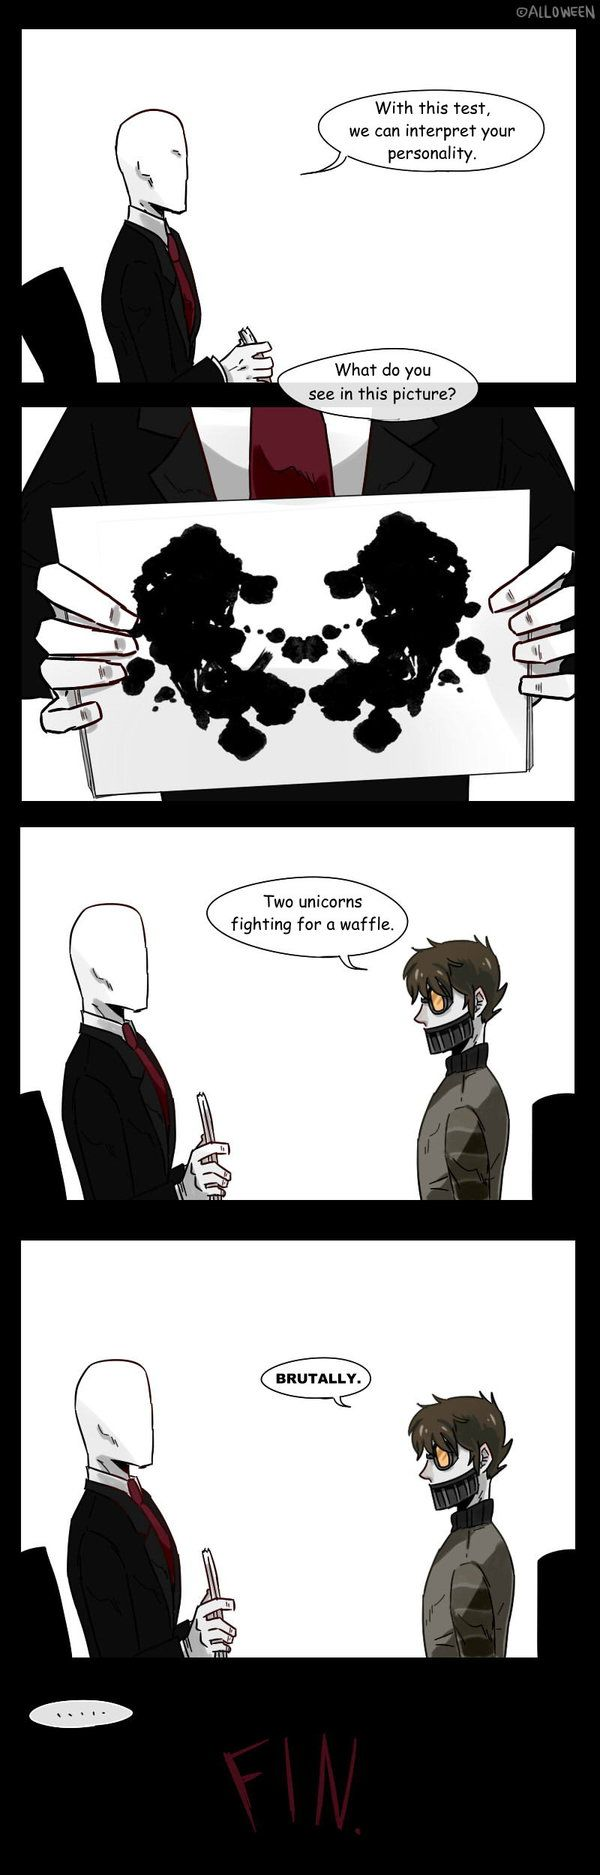 Slender PhD : Ticci Toby by Alloween on DeviantArt